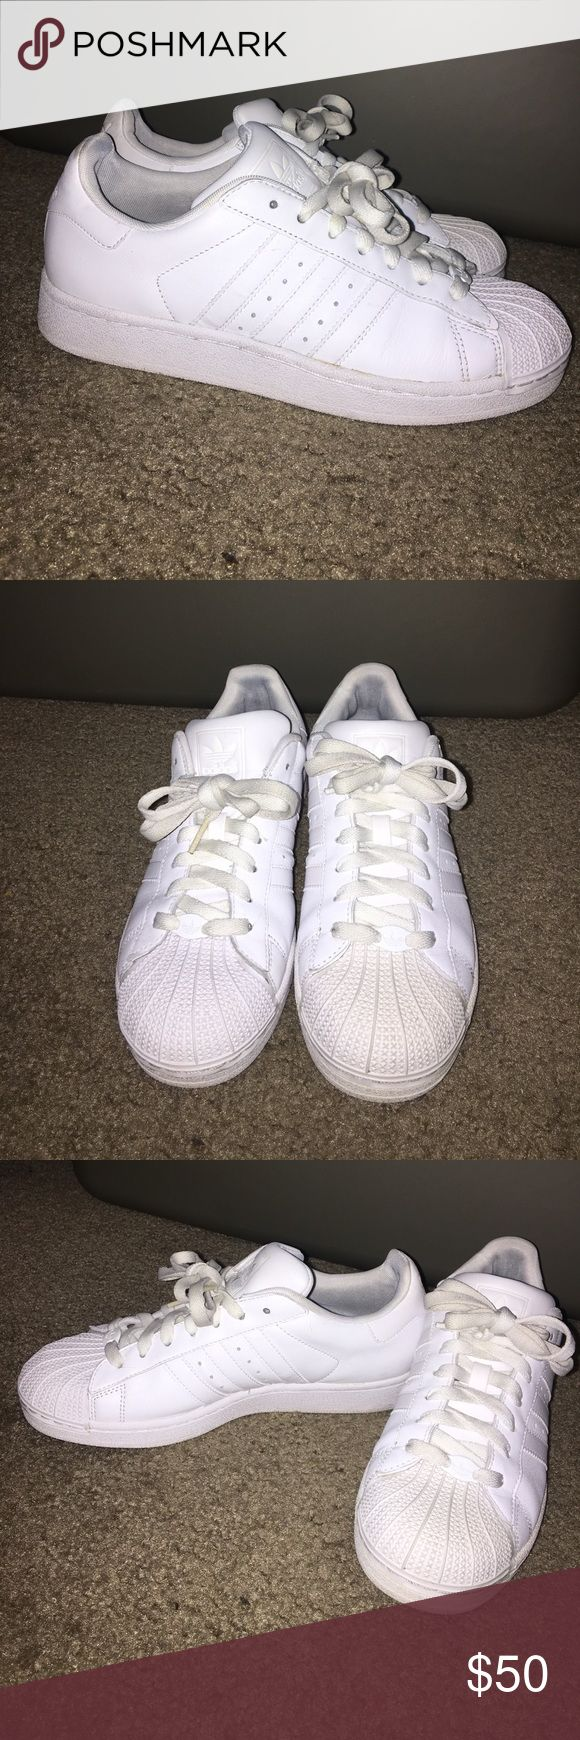 All white class Adidas shell tops White Classic Adidas Shell tops. Worn twice Adidas Shoes Sneakers